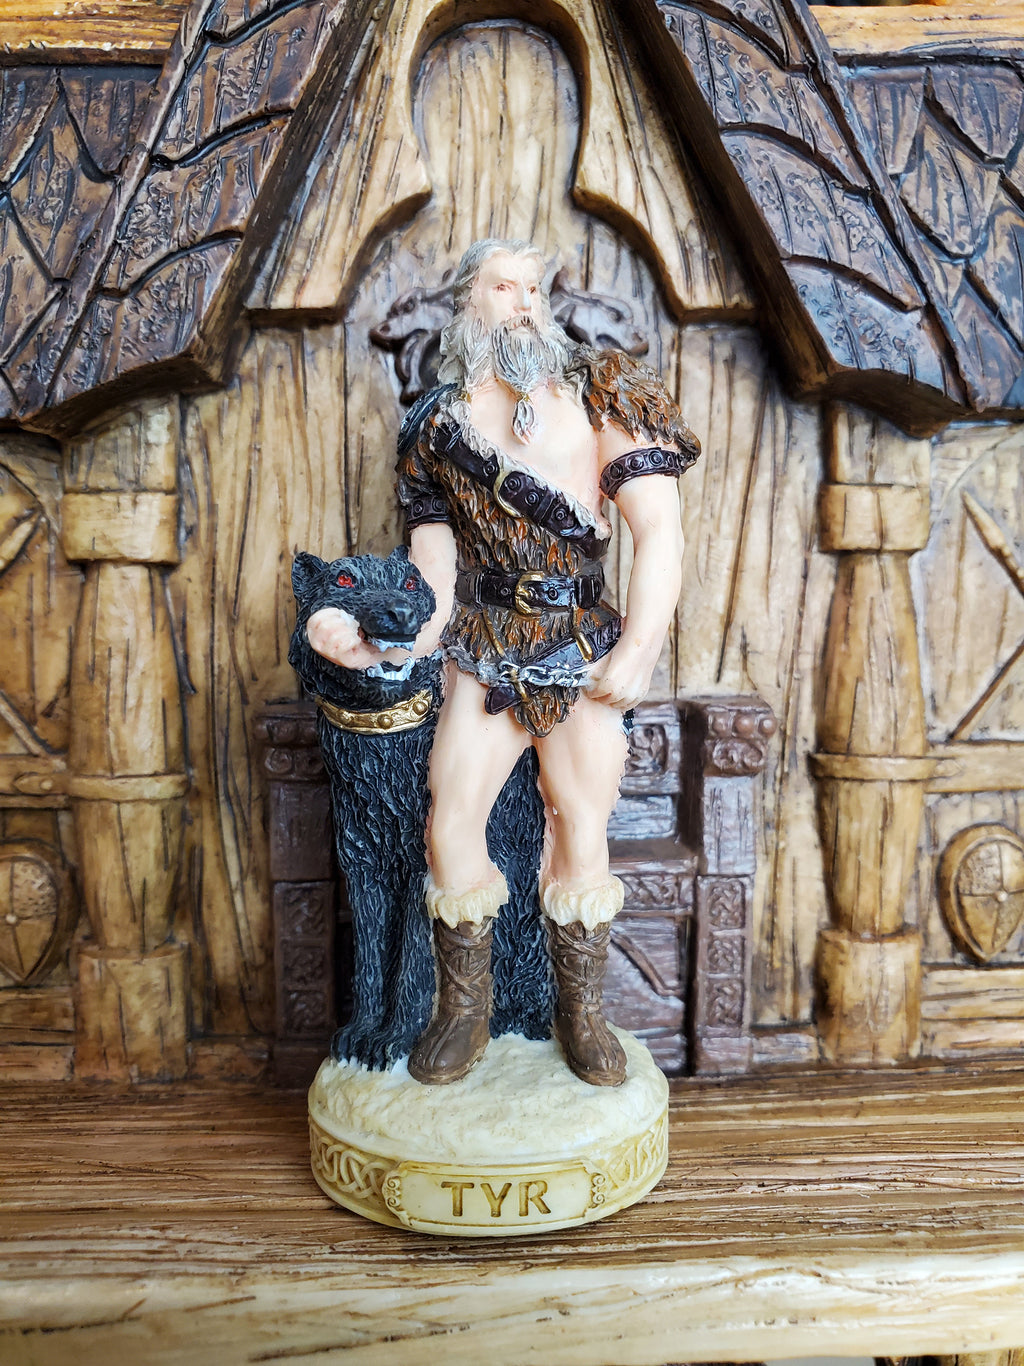 Tyr Mini Statue - Small Hand-Painted Norse God Tyr/Týr